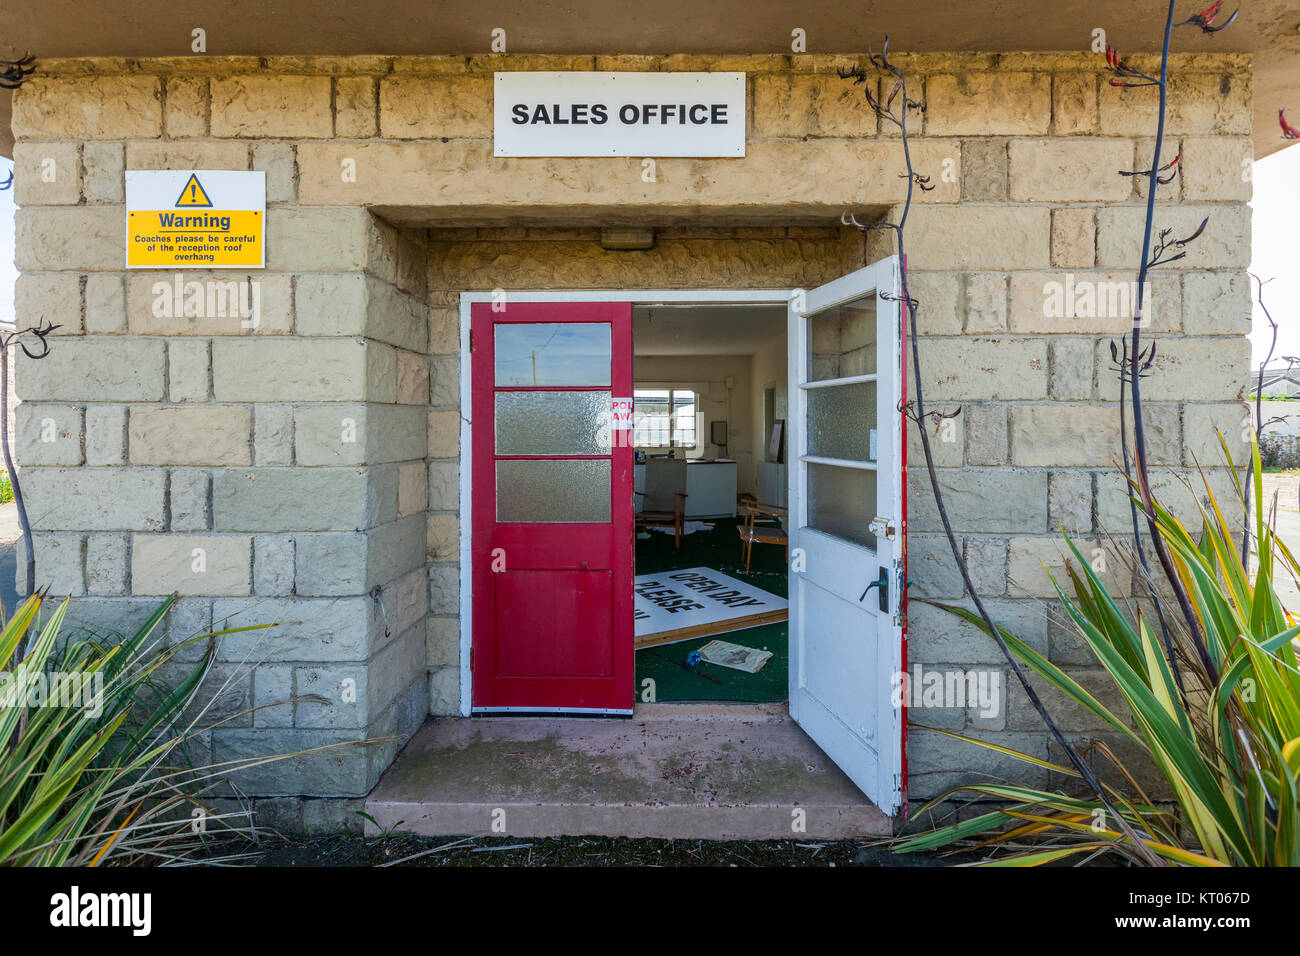 Sales Office / reception, Abandoned Holiday Camp, Isle of Wight, UK - Stock Image